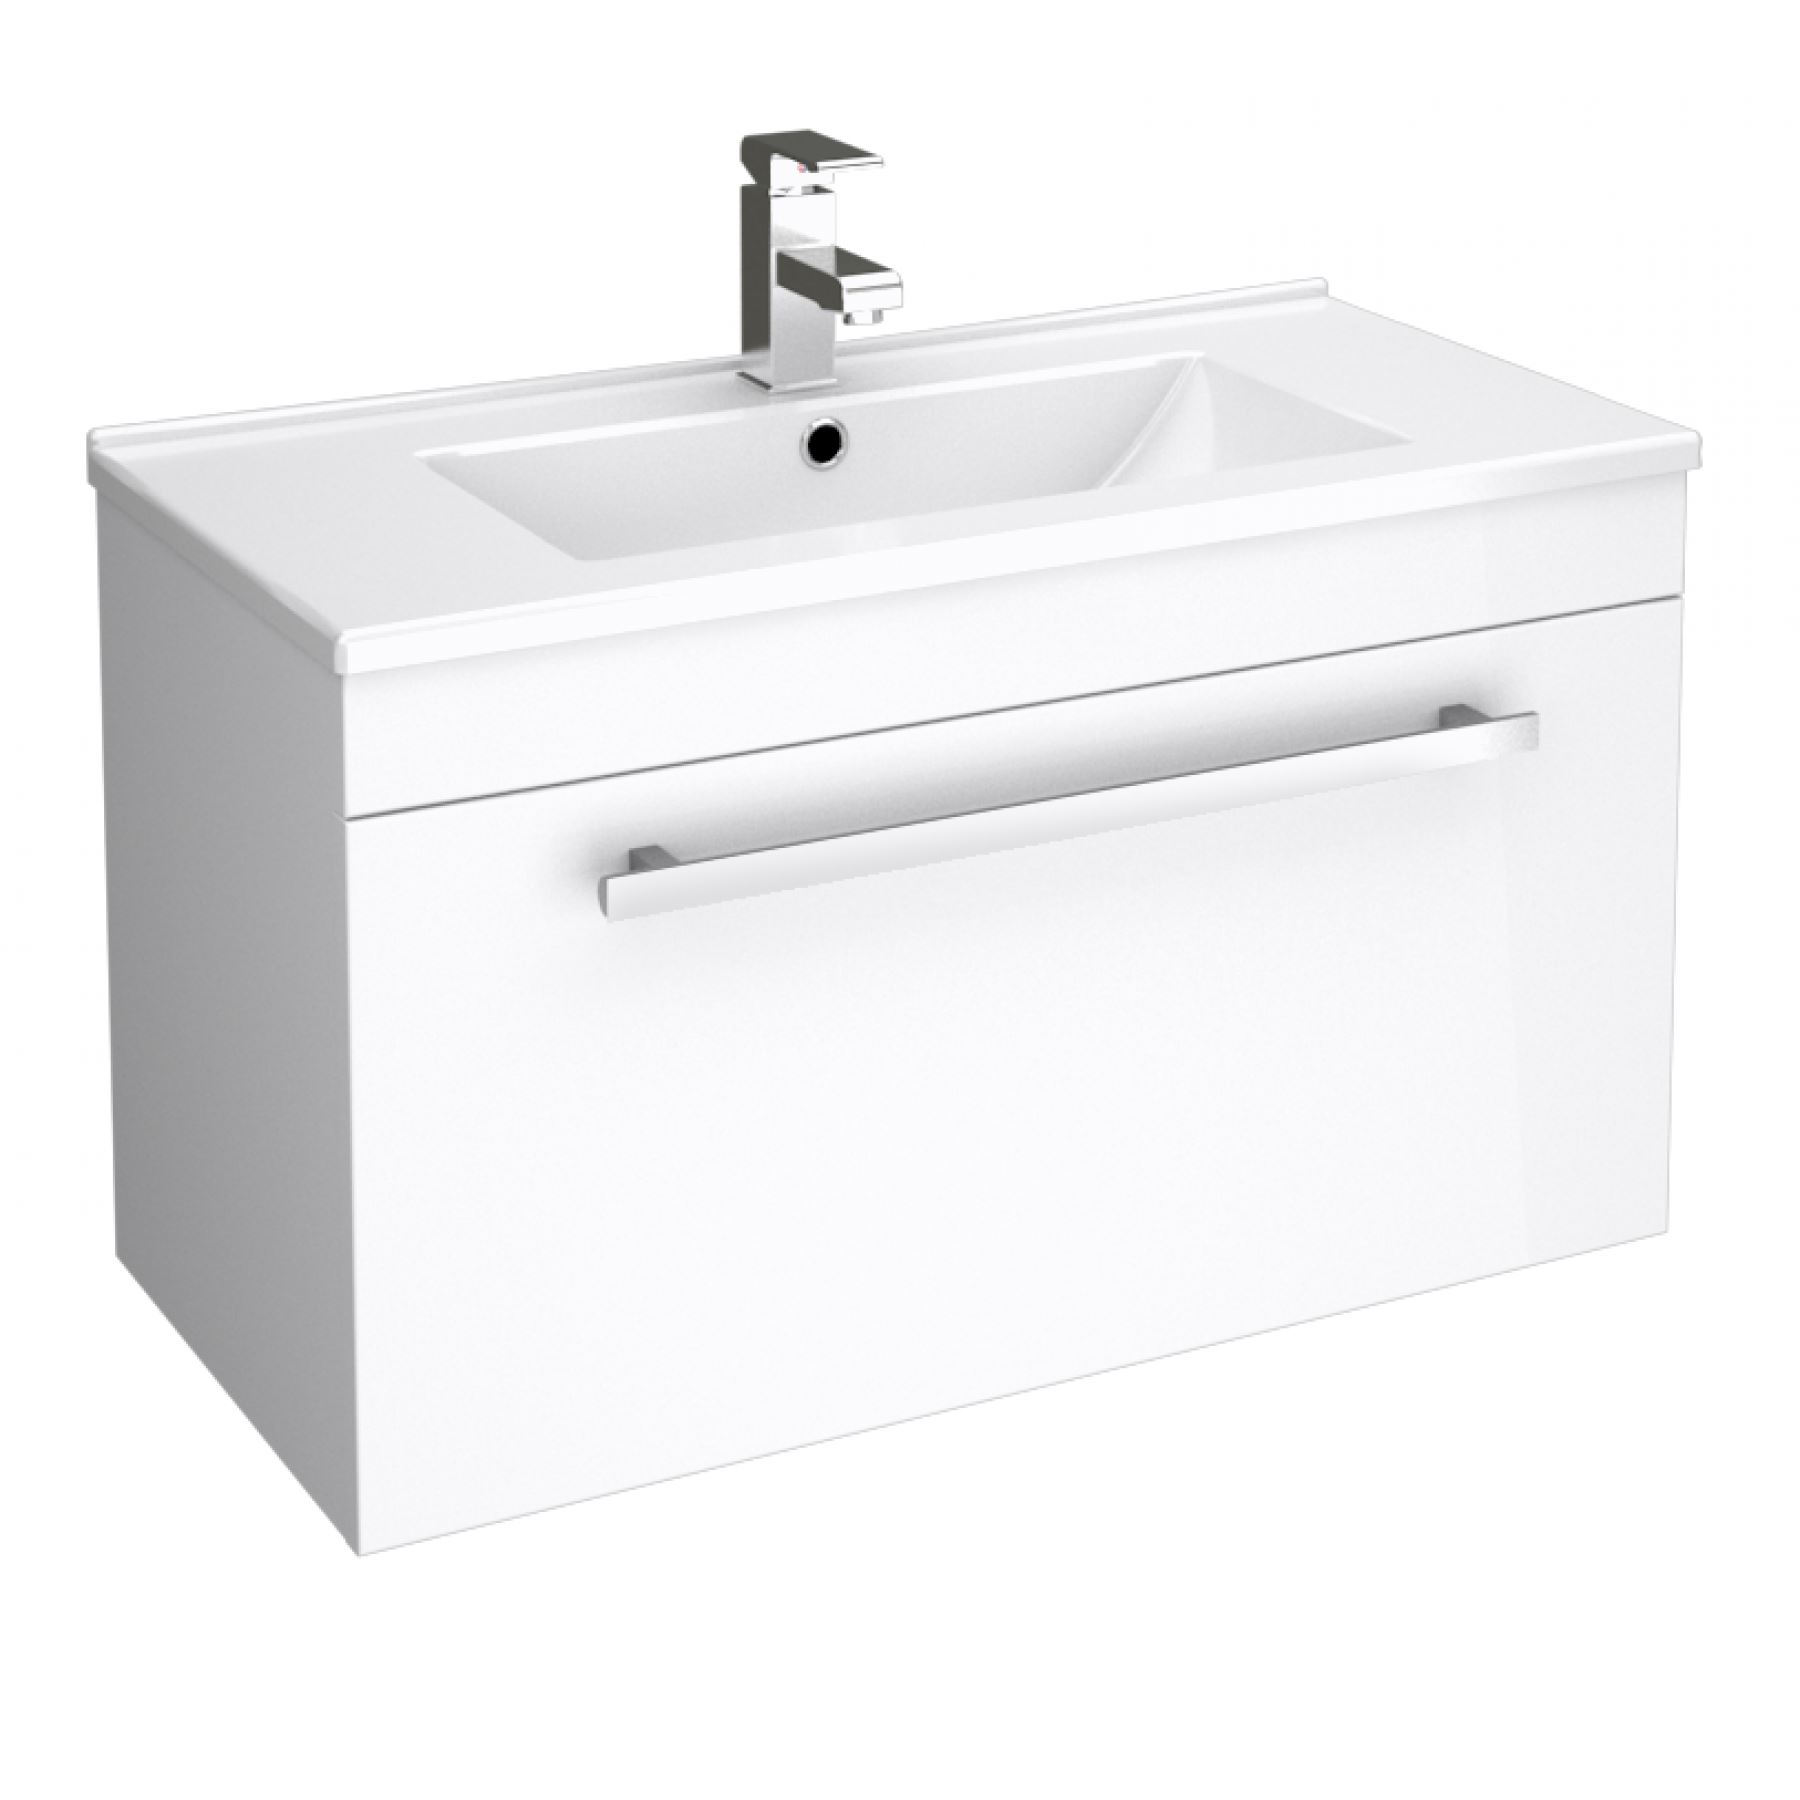 Wall Hung Cloakroom Basin Unit : ... Wall Hung Vanity Unit Cloakroom Cabinet Dropdown Sink Basin 003 eBay